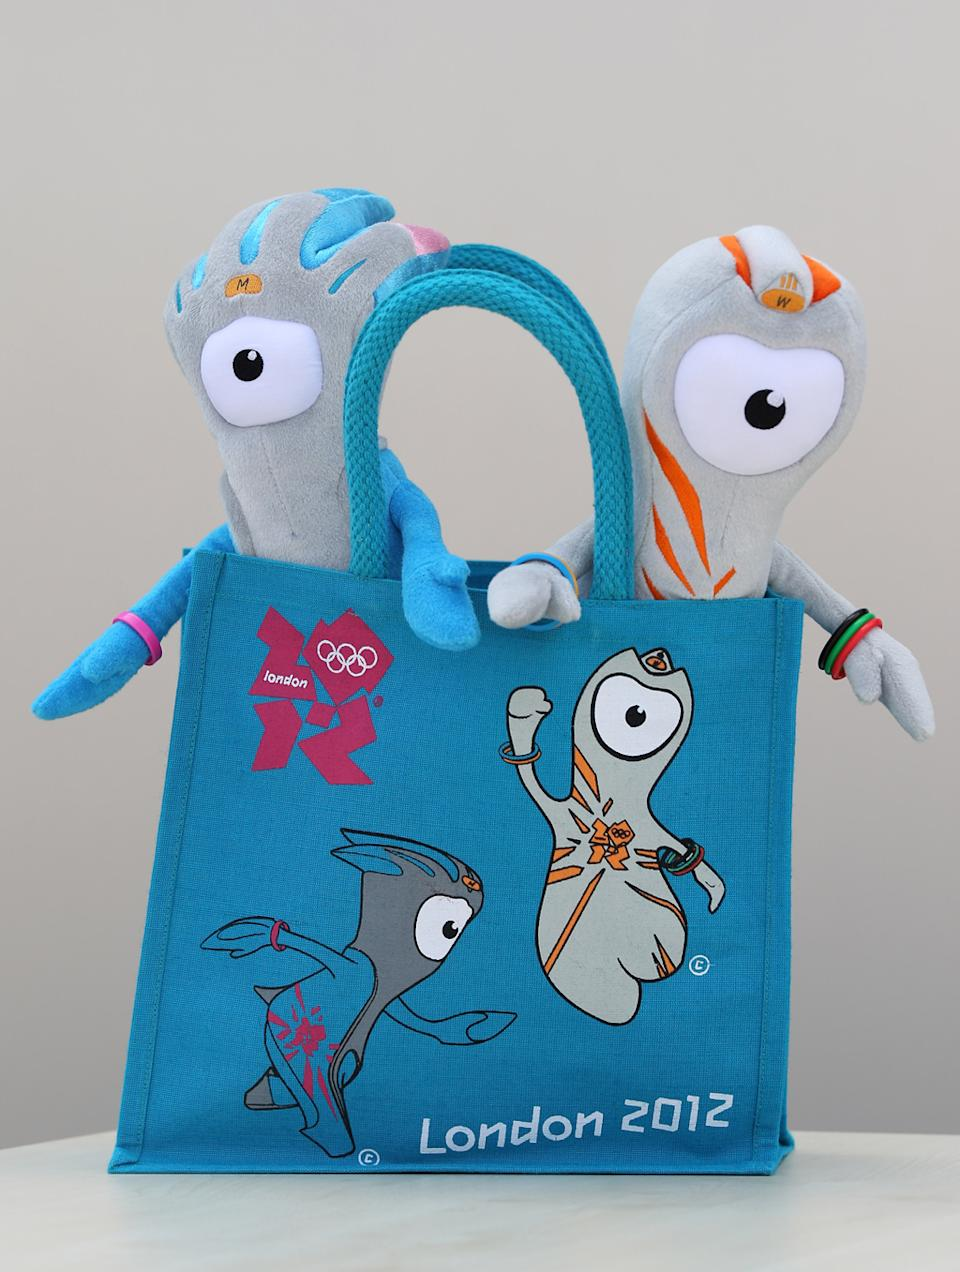 Wenlock (R) and Mandeville (L), soft toy mascots for the London 2012 Olympic Games go on display at the launch of the London Olympic Games official merchandise on July 30, 2010 in London, England. (Photo by Oli Scarff/Getty Images)